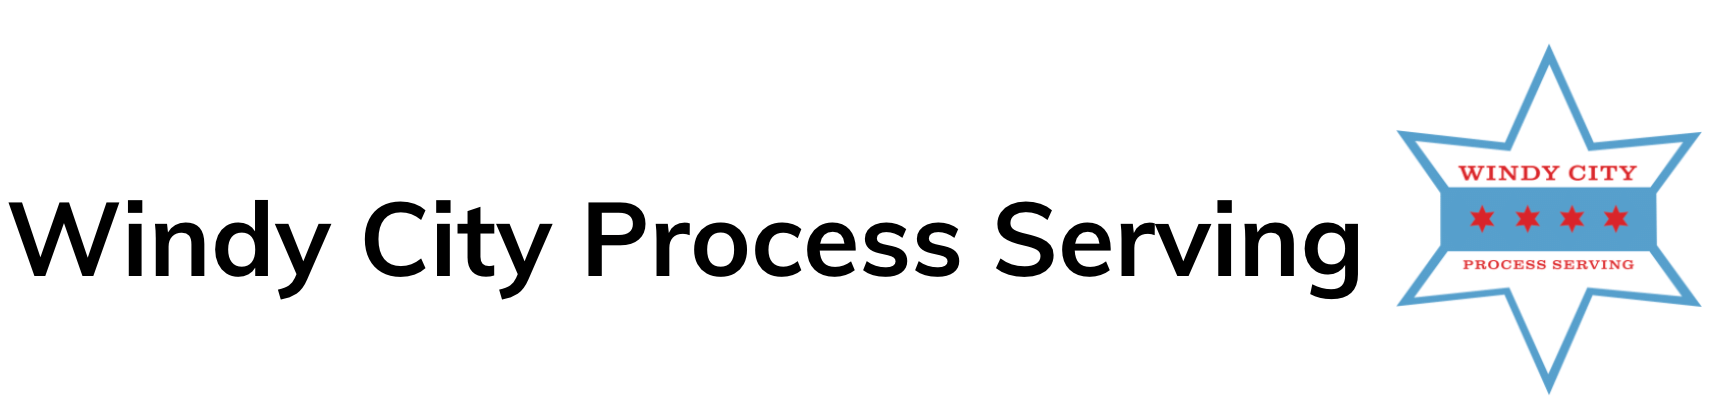 Windy City Process Serving Logo